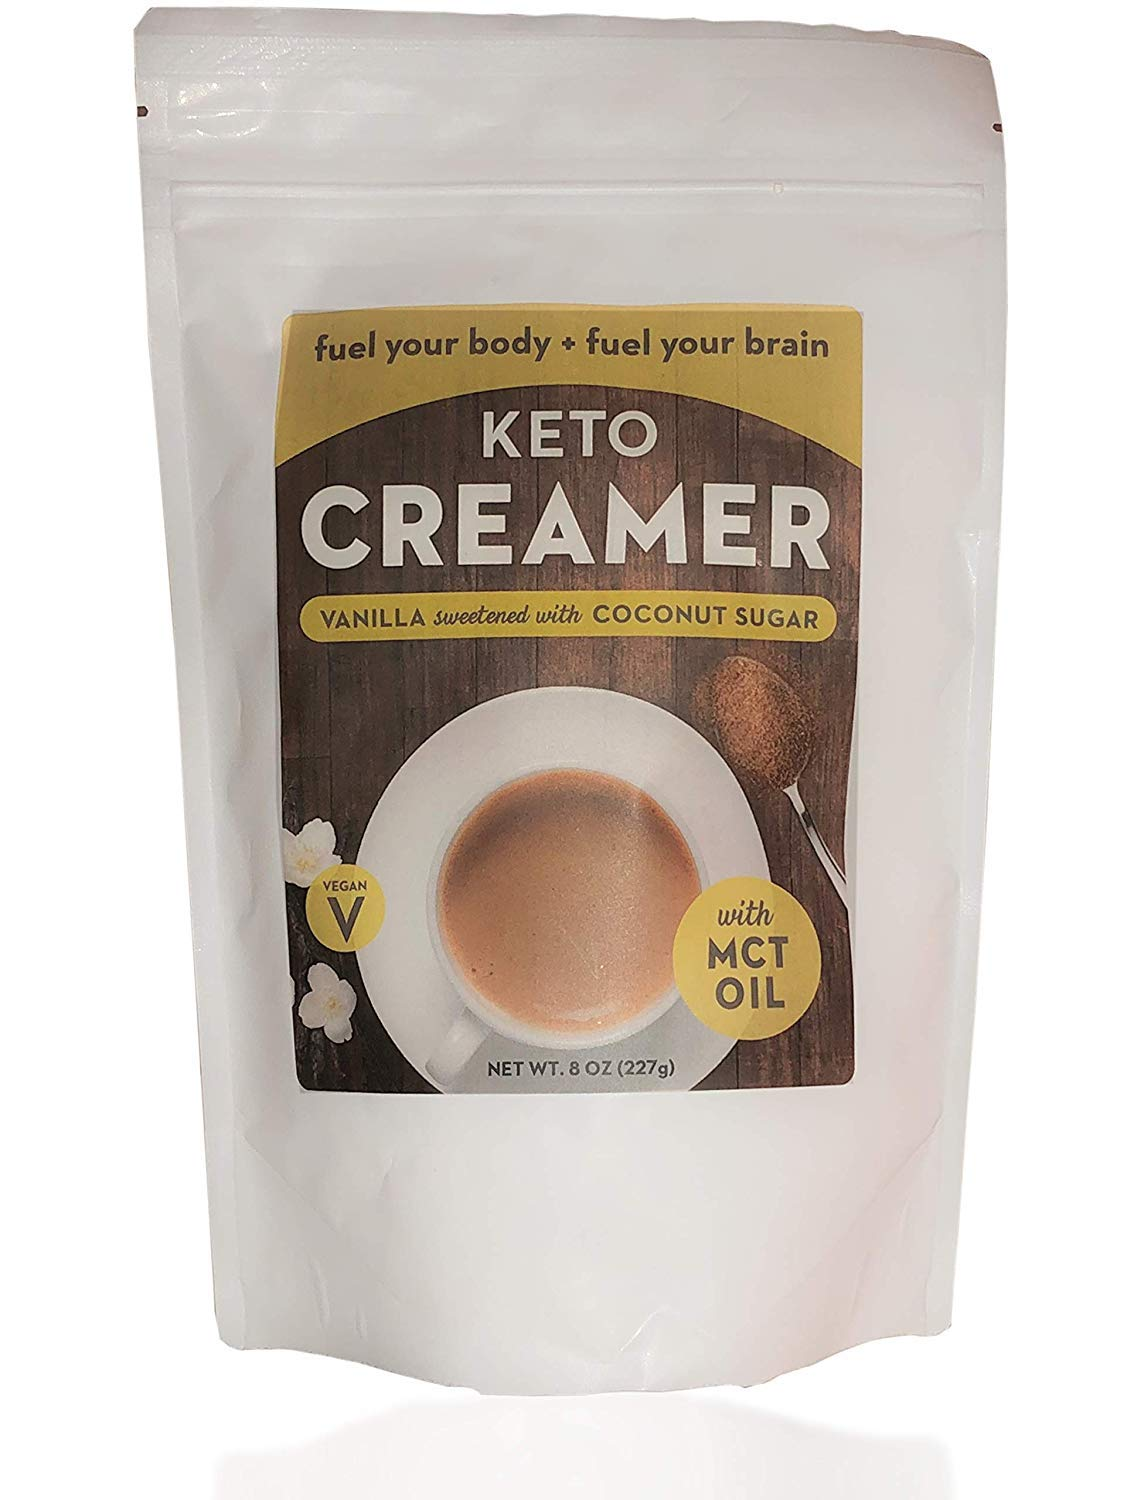 Keto Creamer with MCT Oil, Dairy Free Super Creamer with Vanilla Coconut Sugar, 8 oz Resealable Bag by Keto Creamer